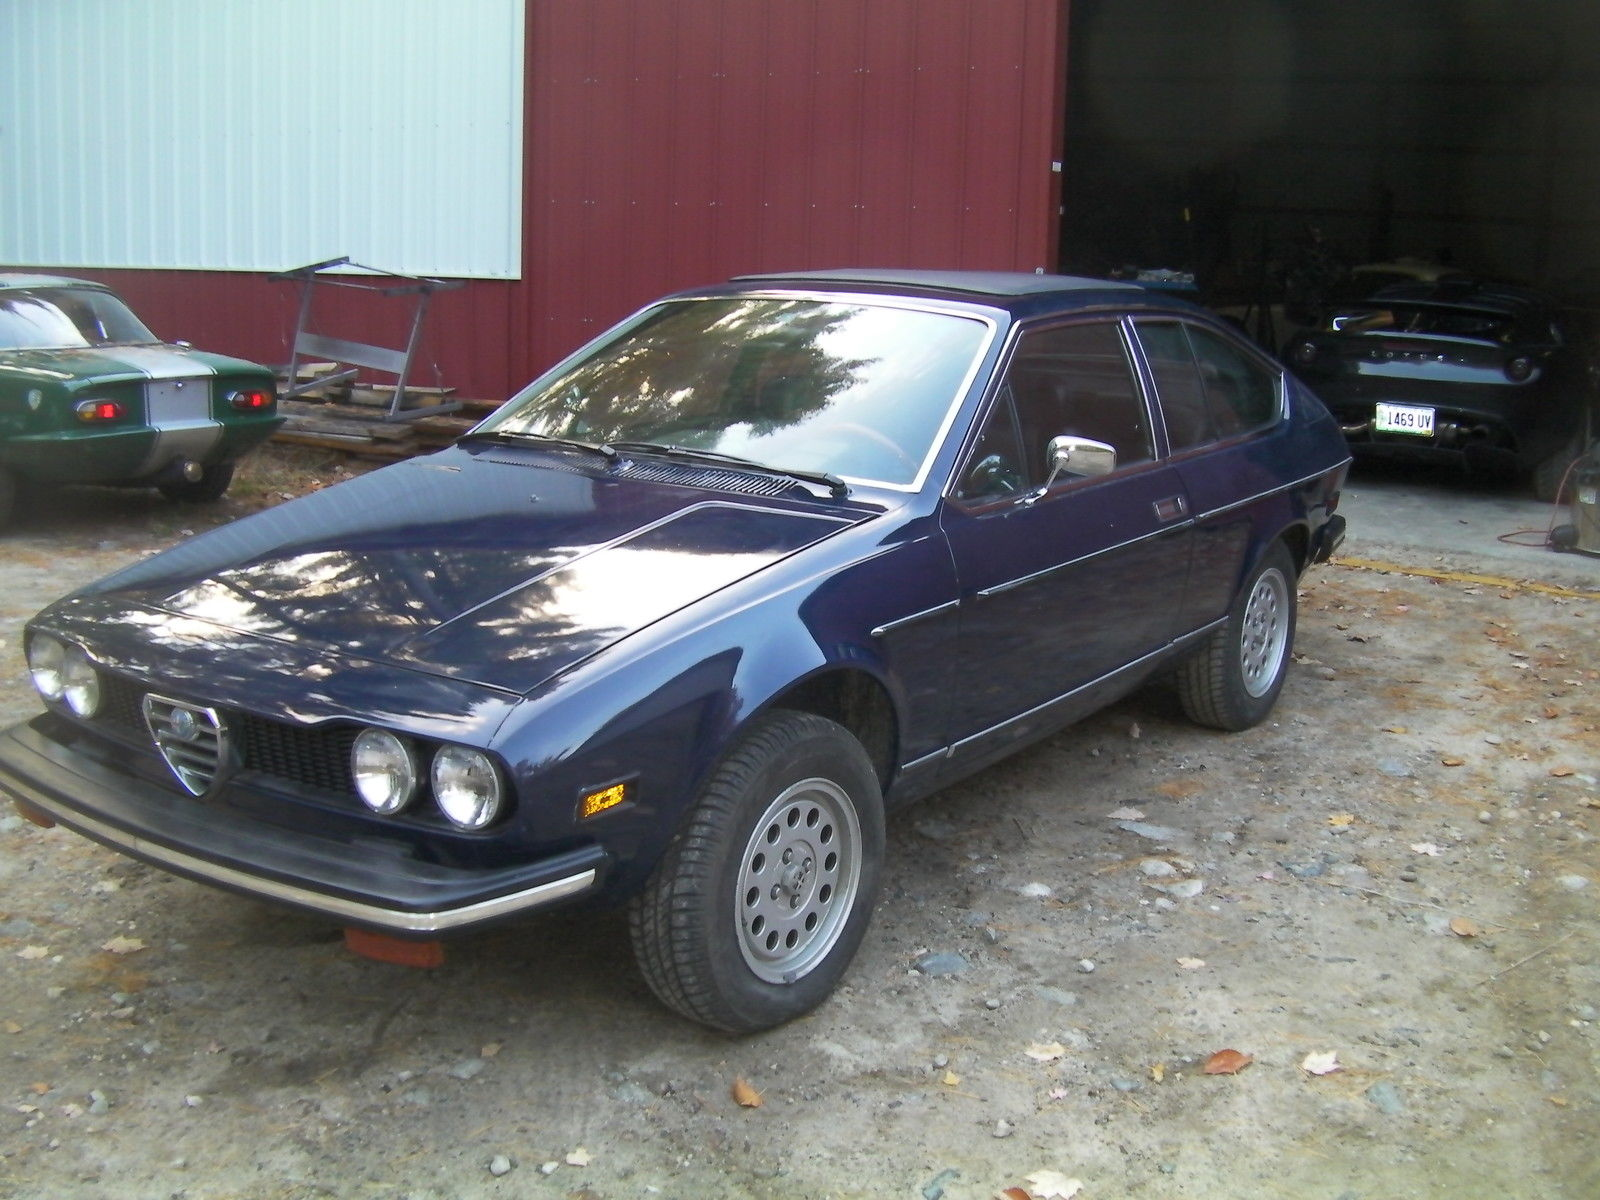 1977 alfa romeo alfetta gt veloce coupe for sale - Alfa romeo coupe for sale ...